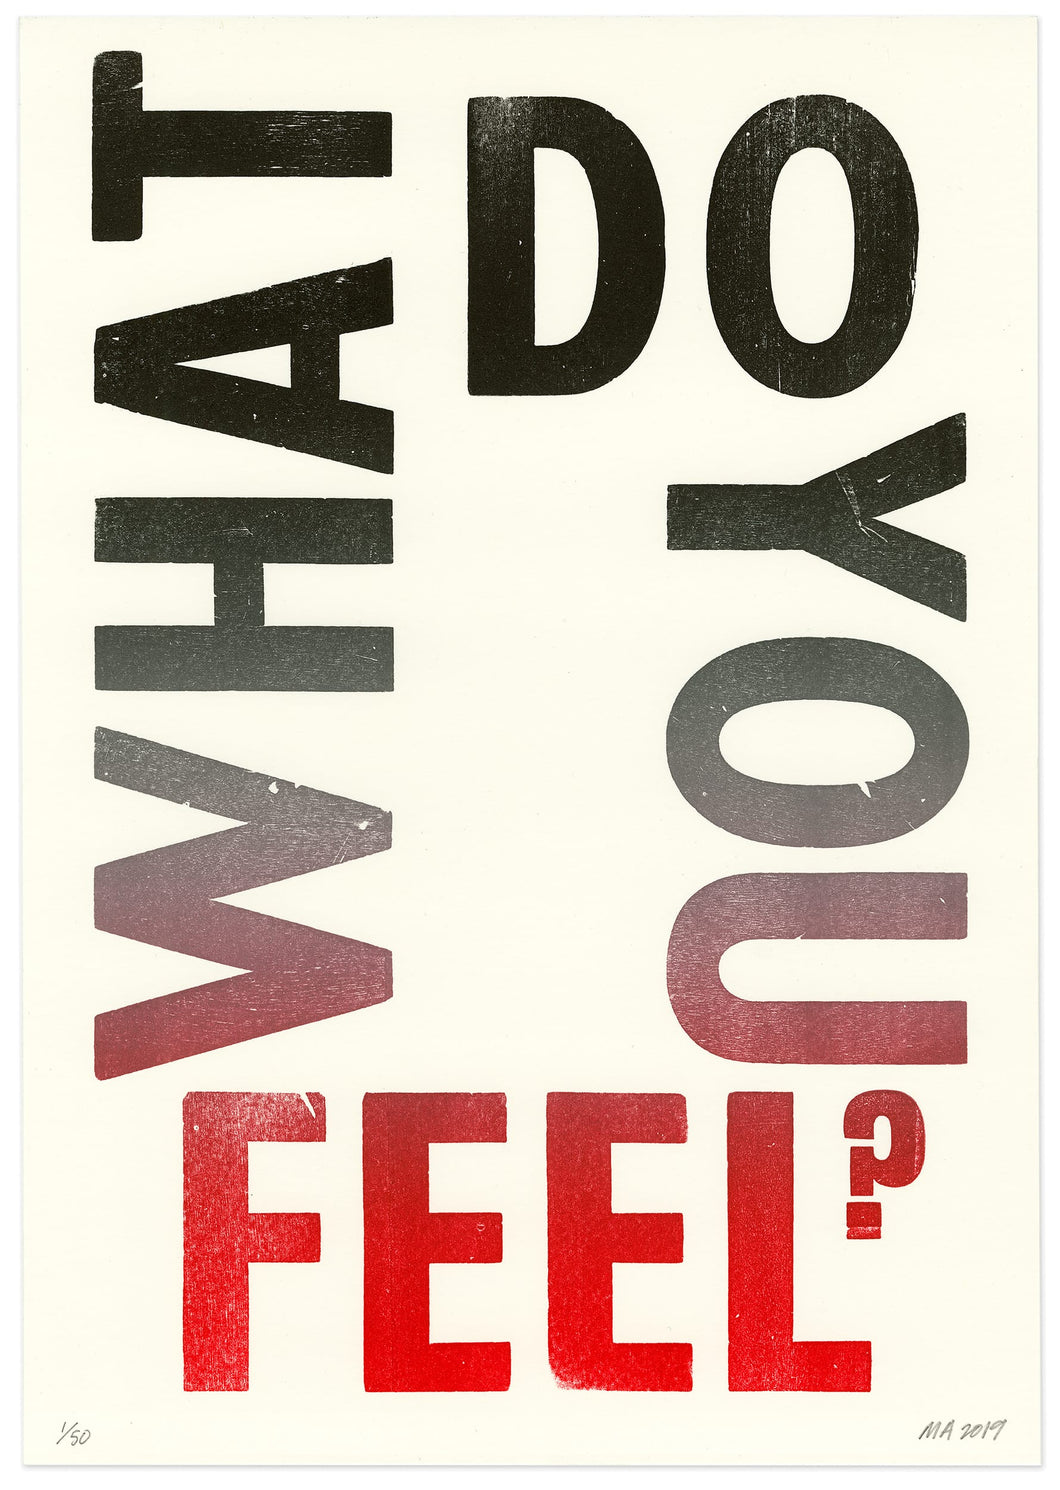 What do you feel?